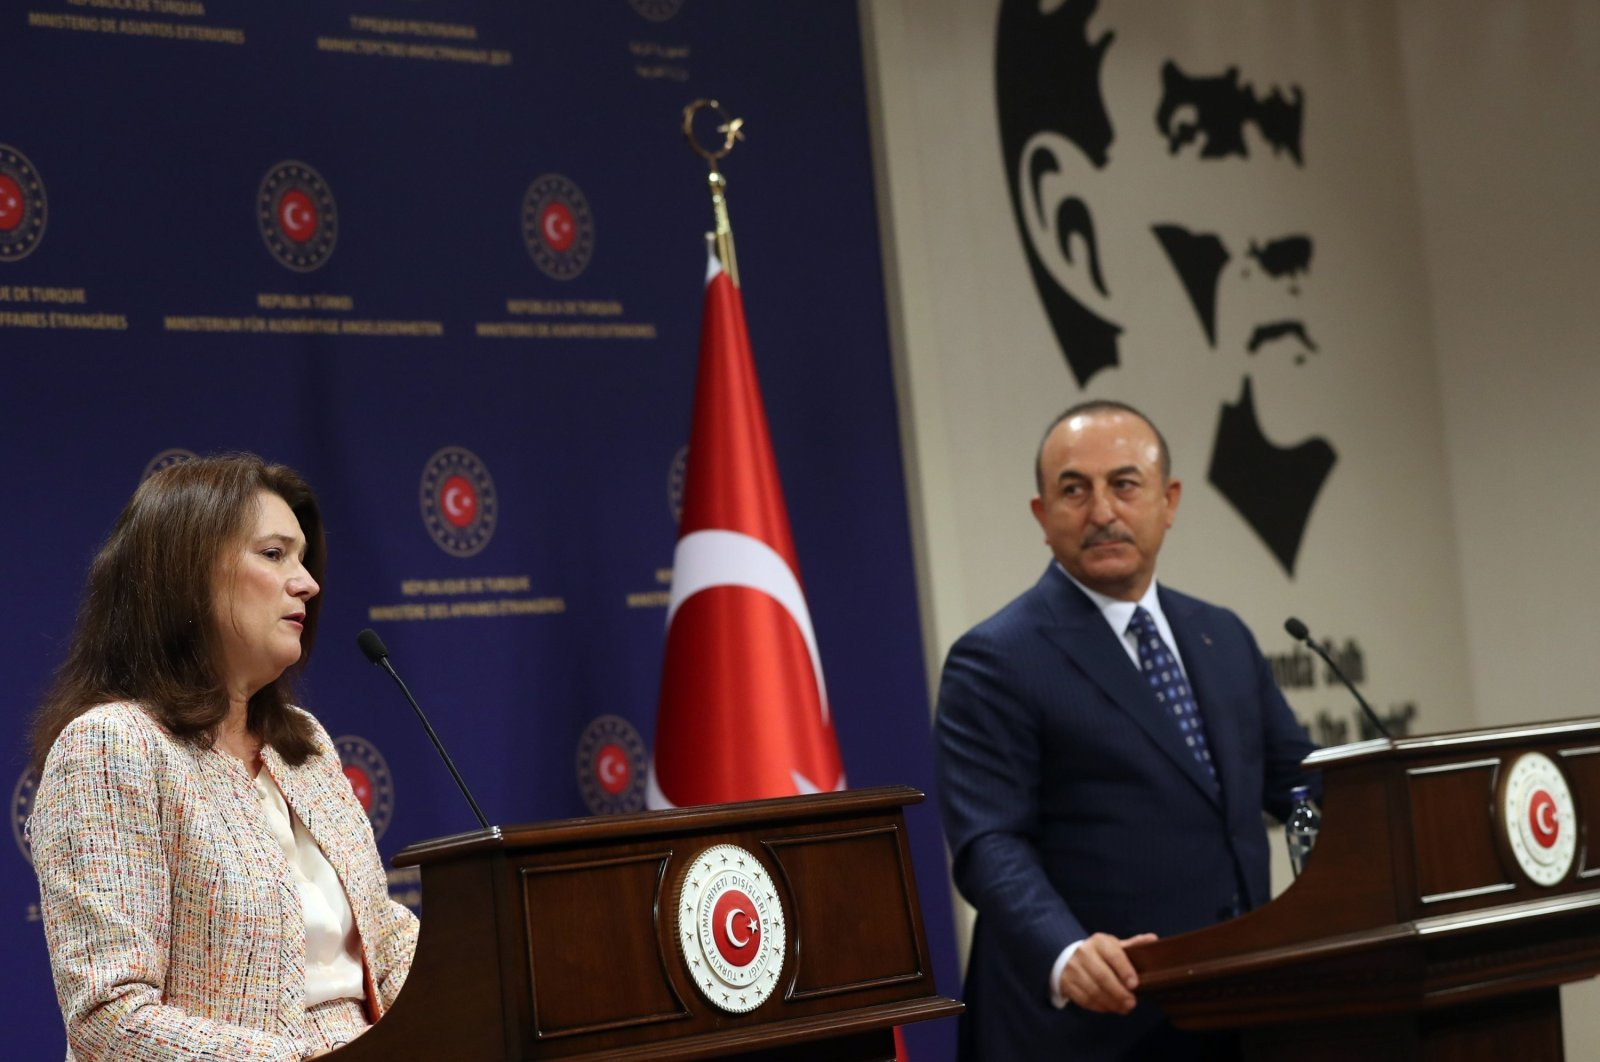 Swedish Foreign Minister Ann Linde (L) and Turkish Foreign Minister Mevlüt Çavuşoğlu hold a joint press conference after their meeting at the Foreign Ministry's headquarters in Ankara, Turkey, Oct. 13, 2020. (AFP Photo)